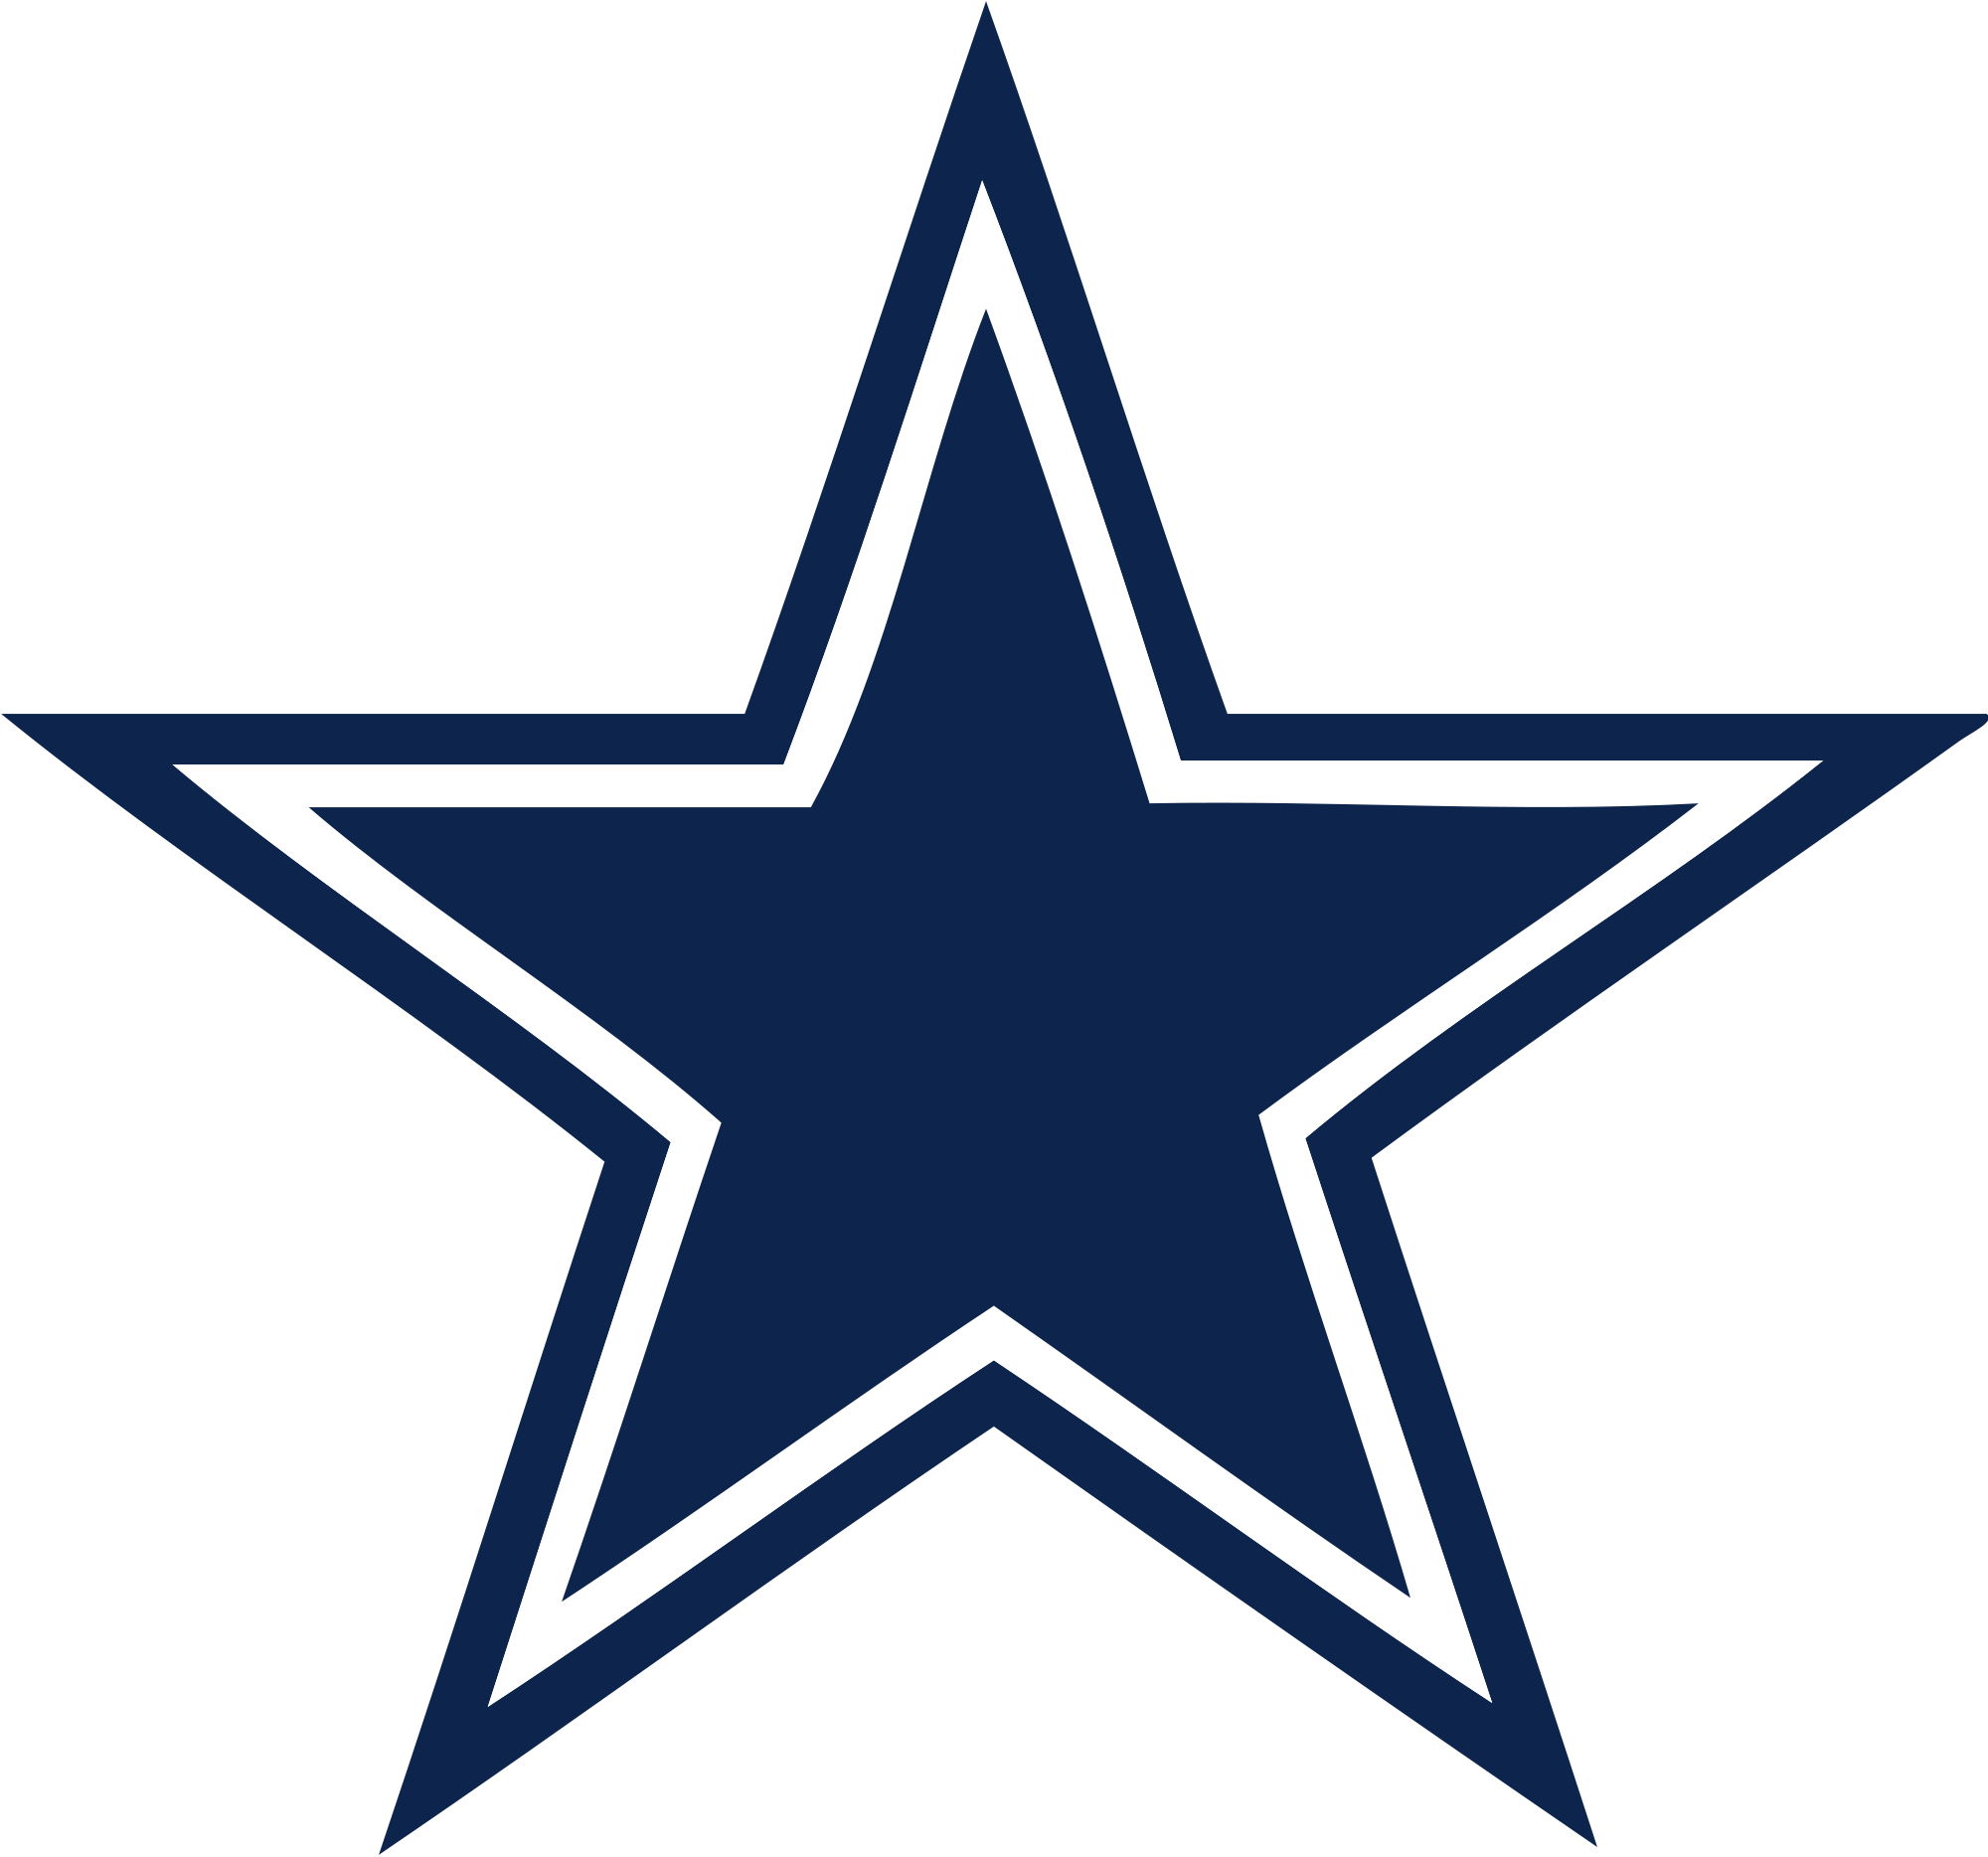 Dallas-cowboys-logo-download-free-dallas-cowboys-logo-tumblr-and-pinterest-pictures-wallpaper-wp5006534